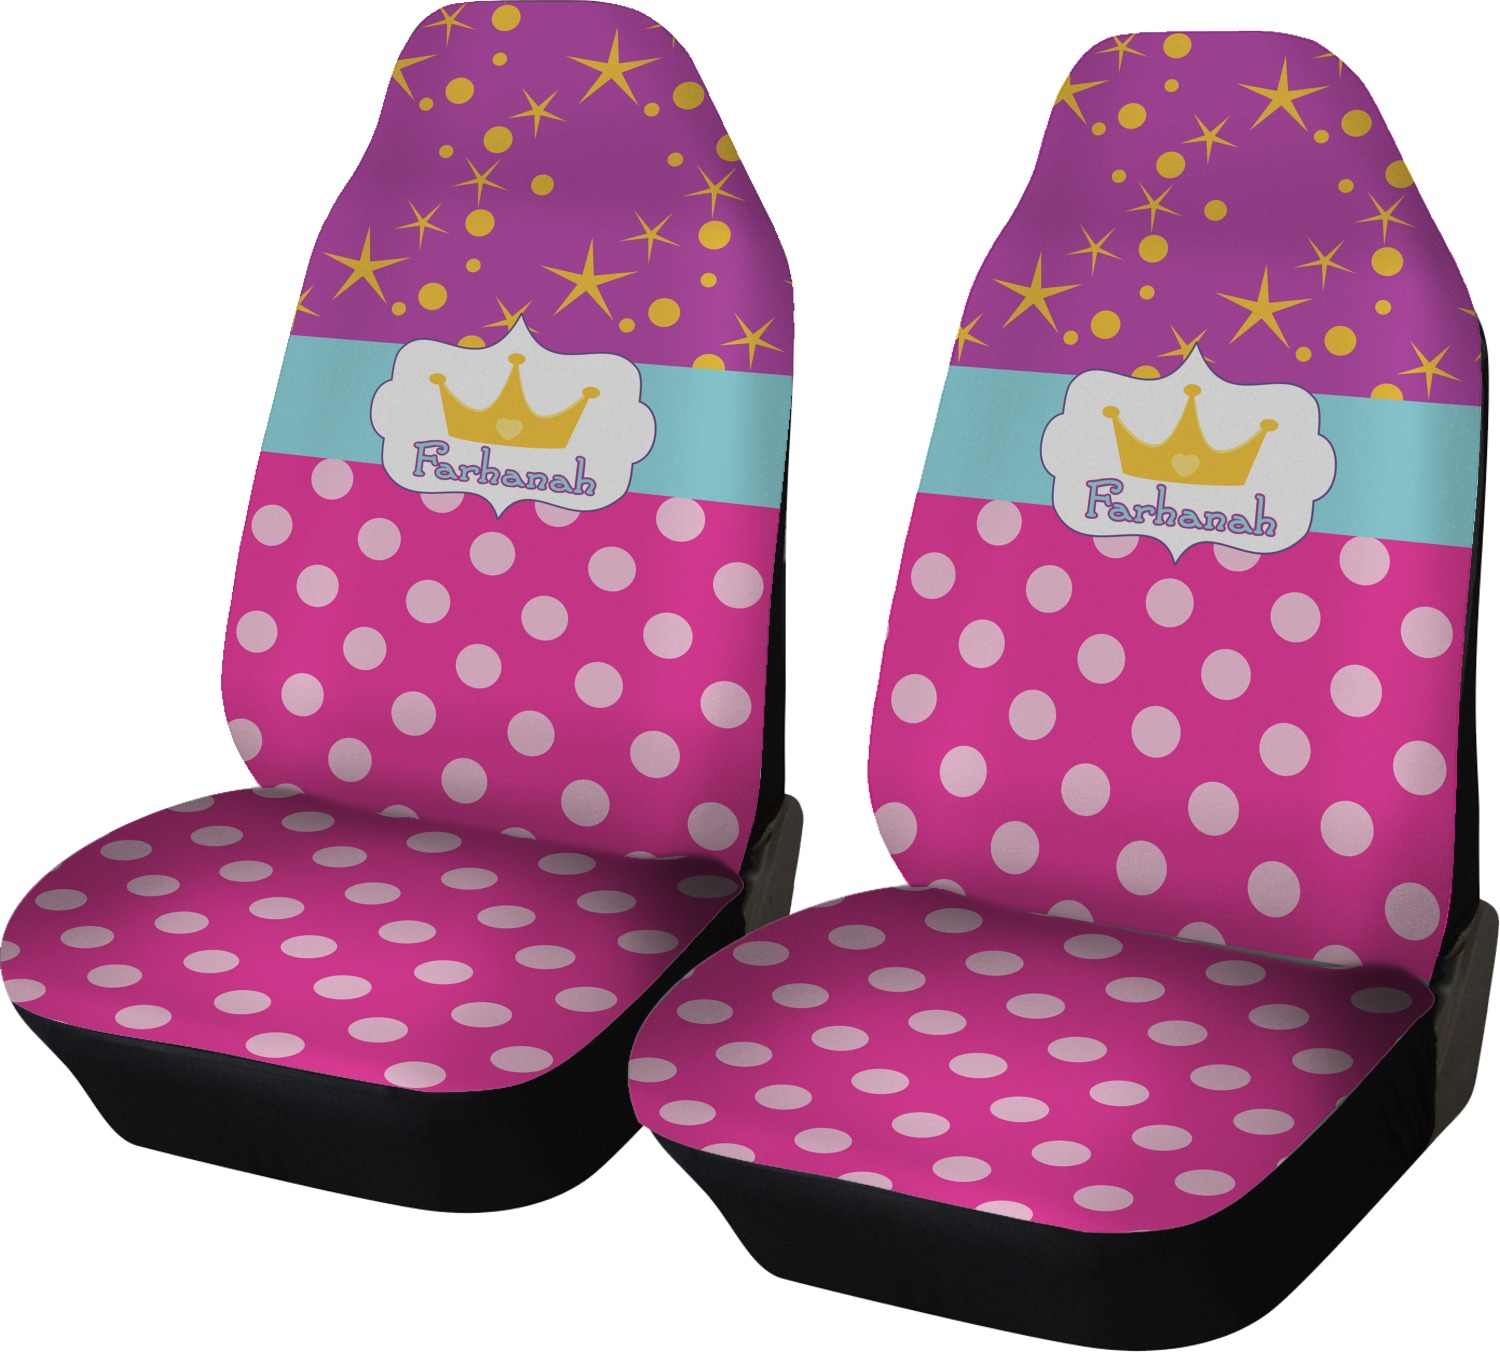 Tremendous Sparkle Dots Car Seat Covers Set Of Two Personalized Uwap Interior Chair Design Uwaporg